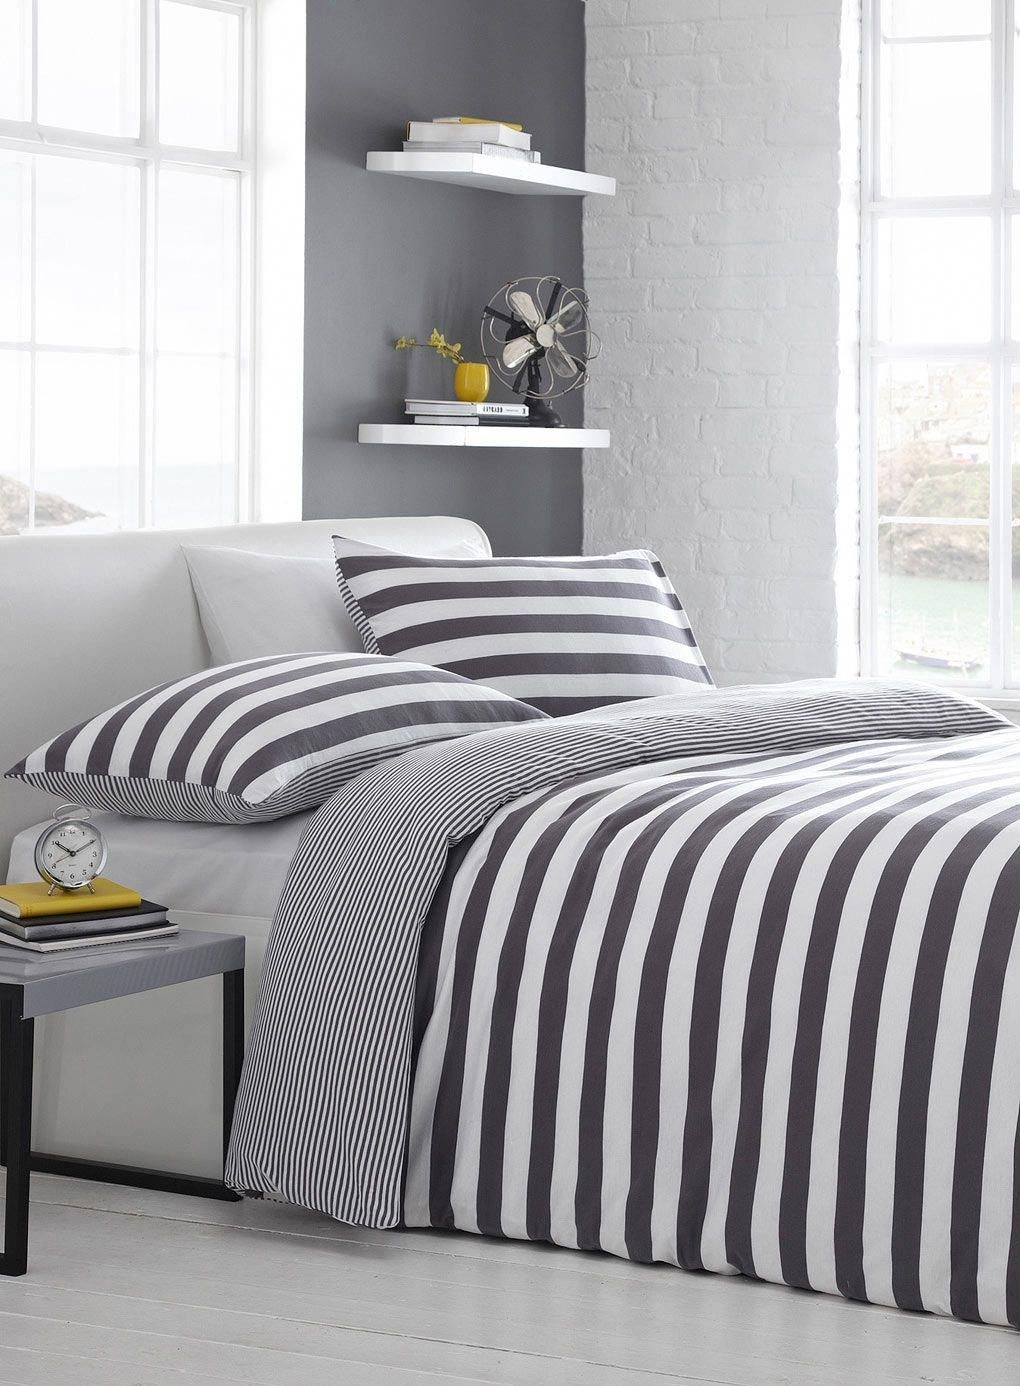 Black And White Striped Bedding 6